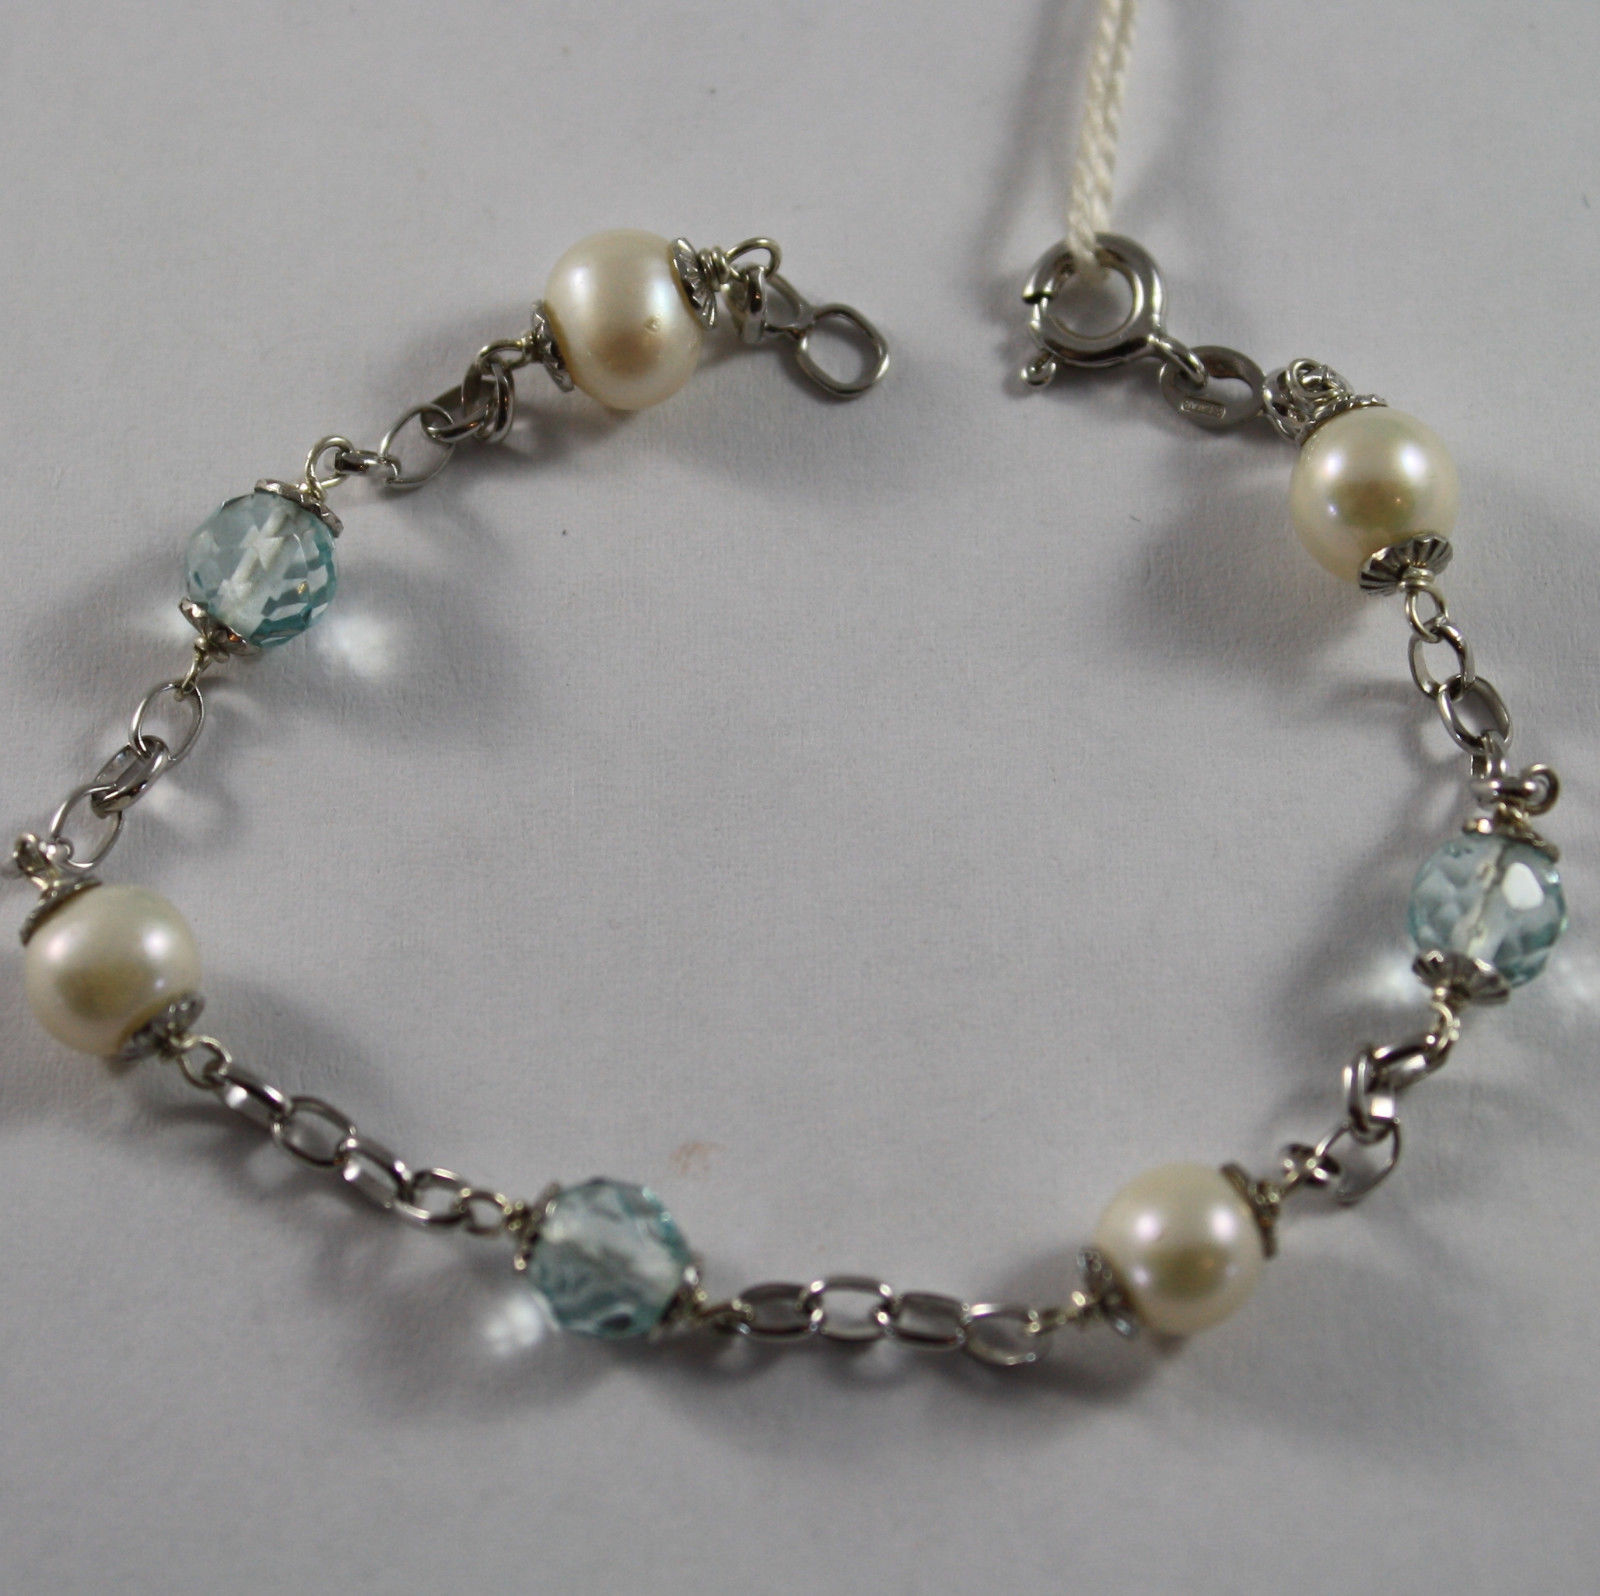 .925 RHODIUM SILVER BRACELET WITH WHITE FRESHWATER PEARLS AND BLUE CRYSTAL